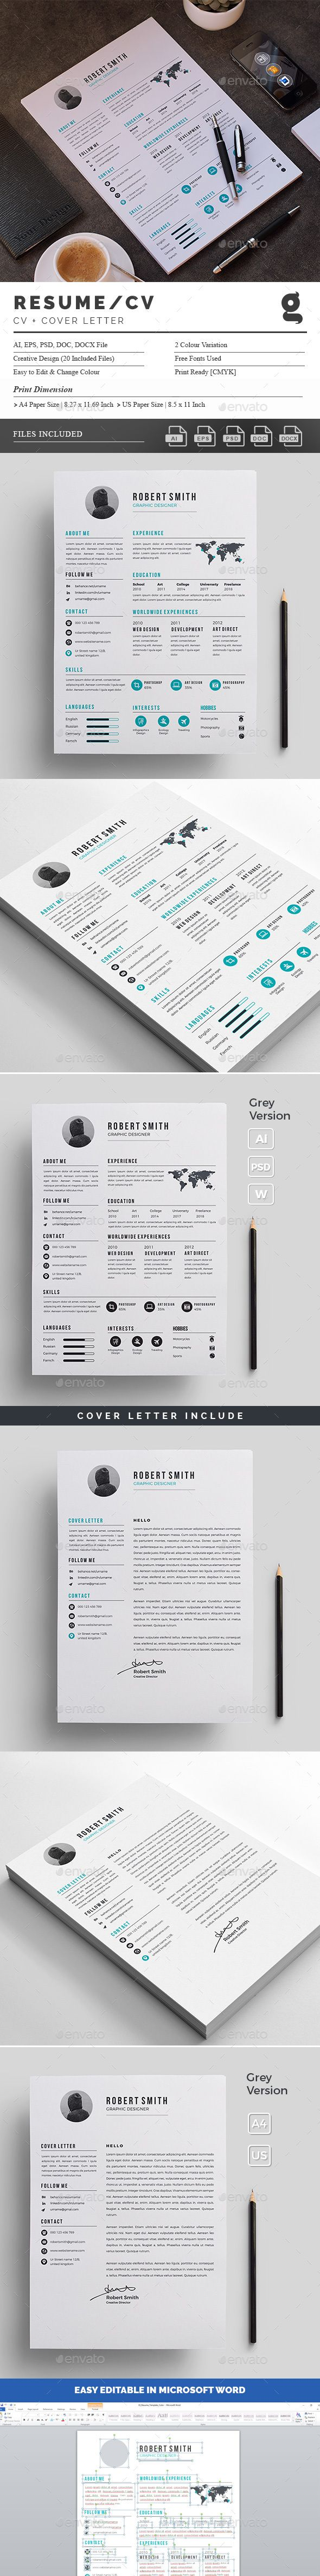 202 best Resumes cover letters & interview info images on